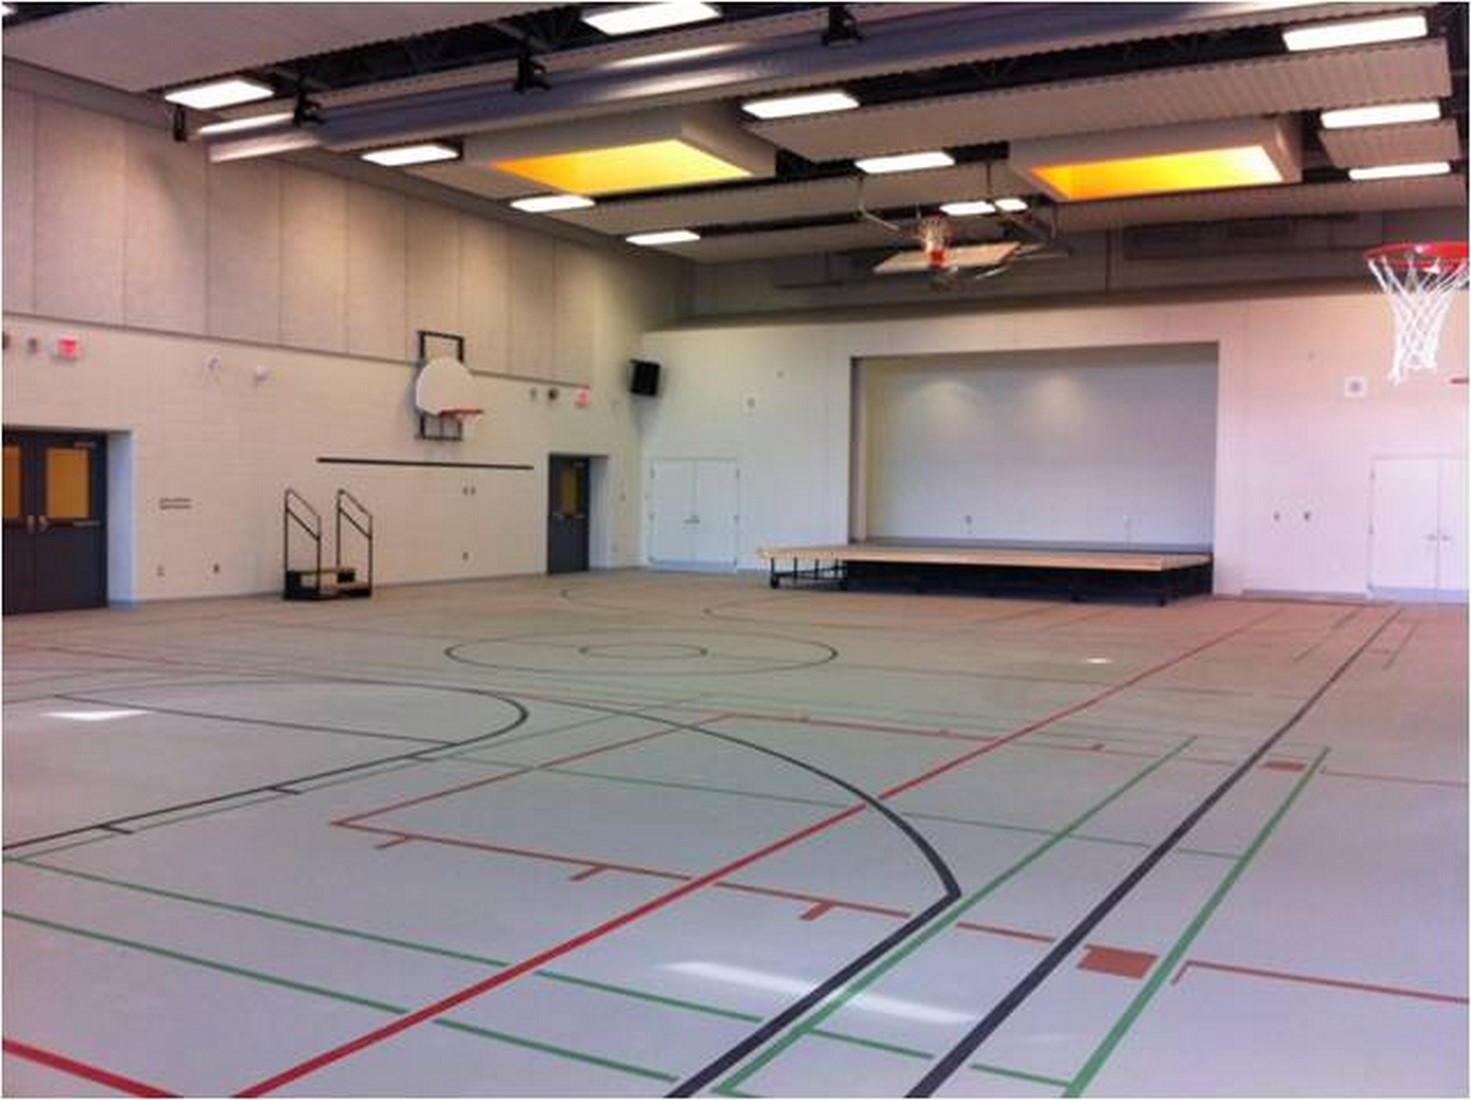 Tdsb jr wilcox newgen construction corporation for 3000 sq ft gym layout